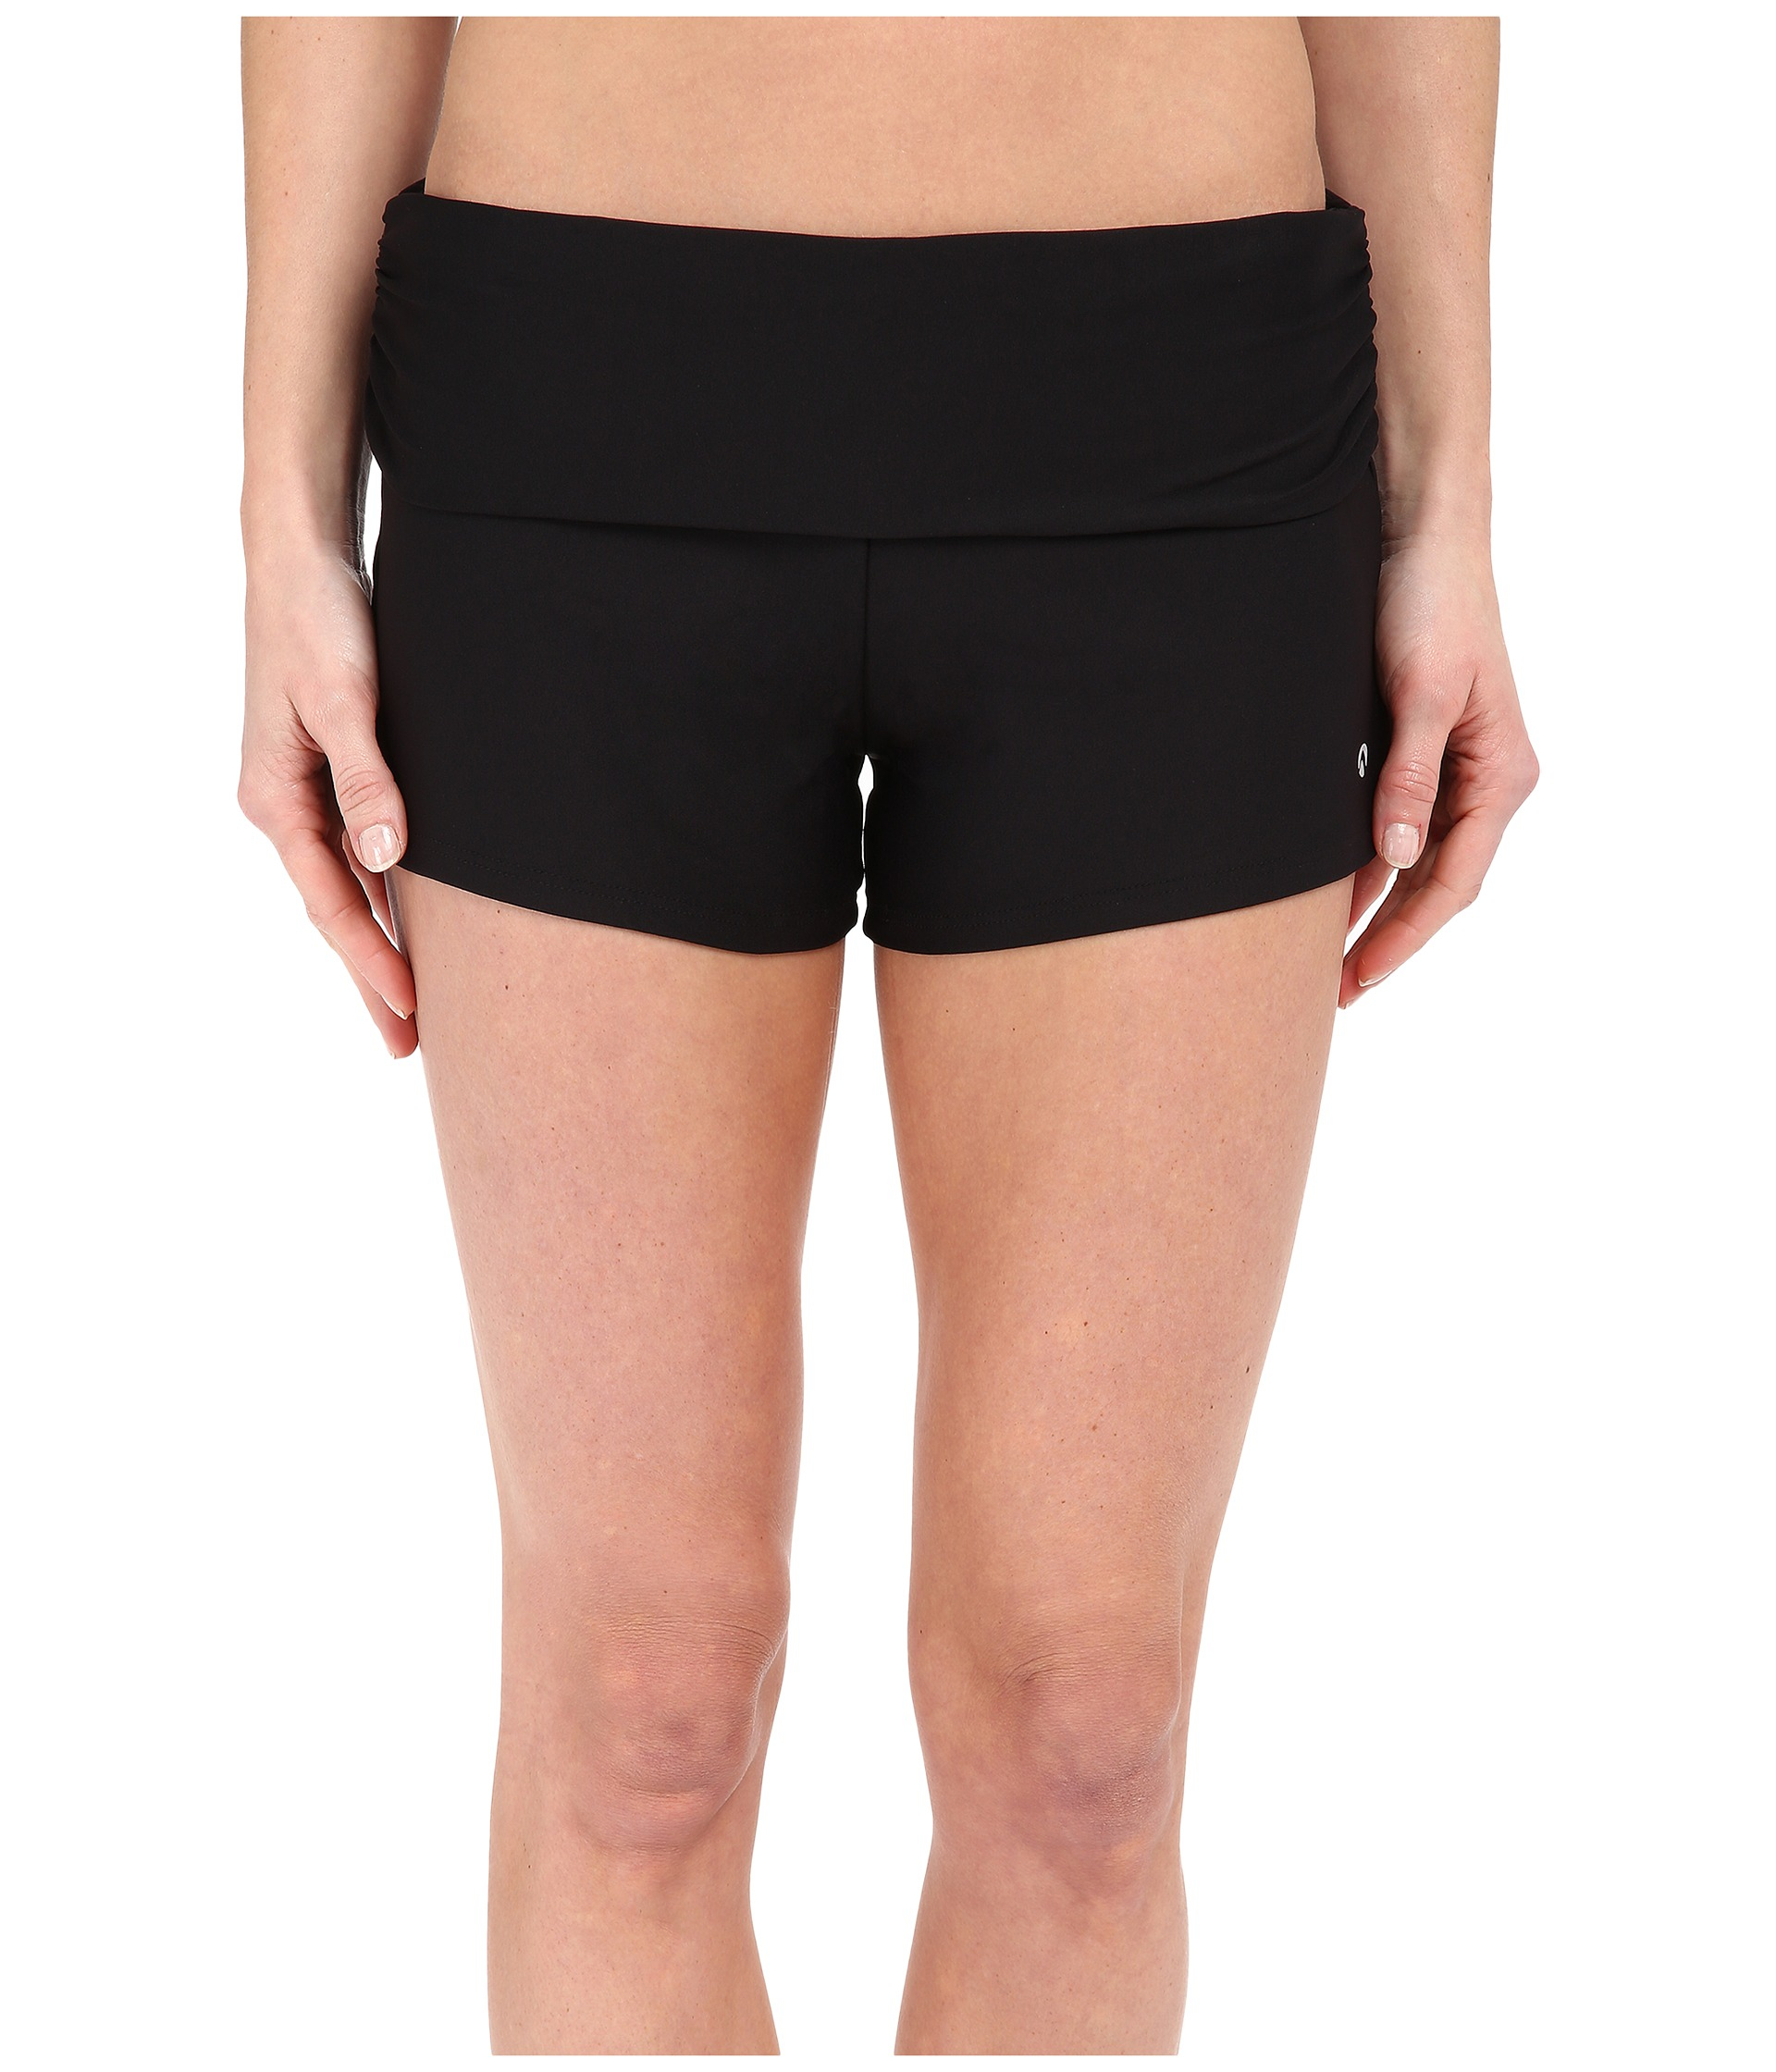 d0afcf5532 Next By Athena Good Karma Shorebreaker Roll Top Swim Shorts in Black - Lyst